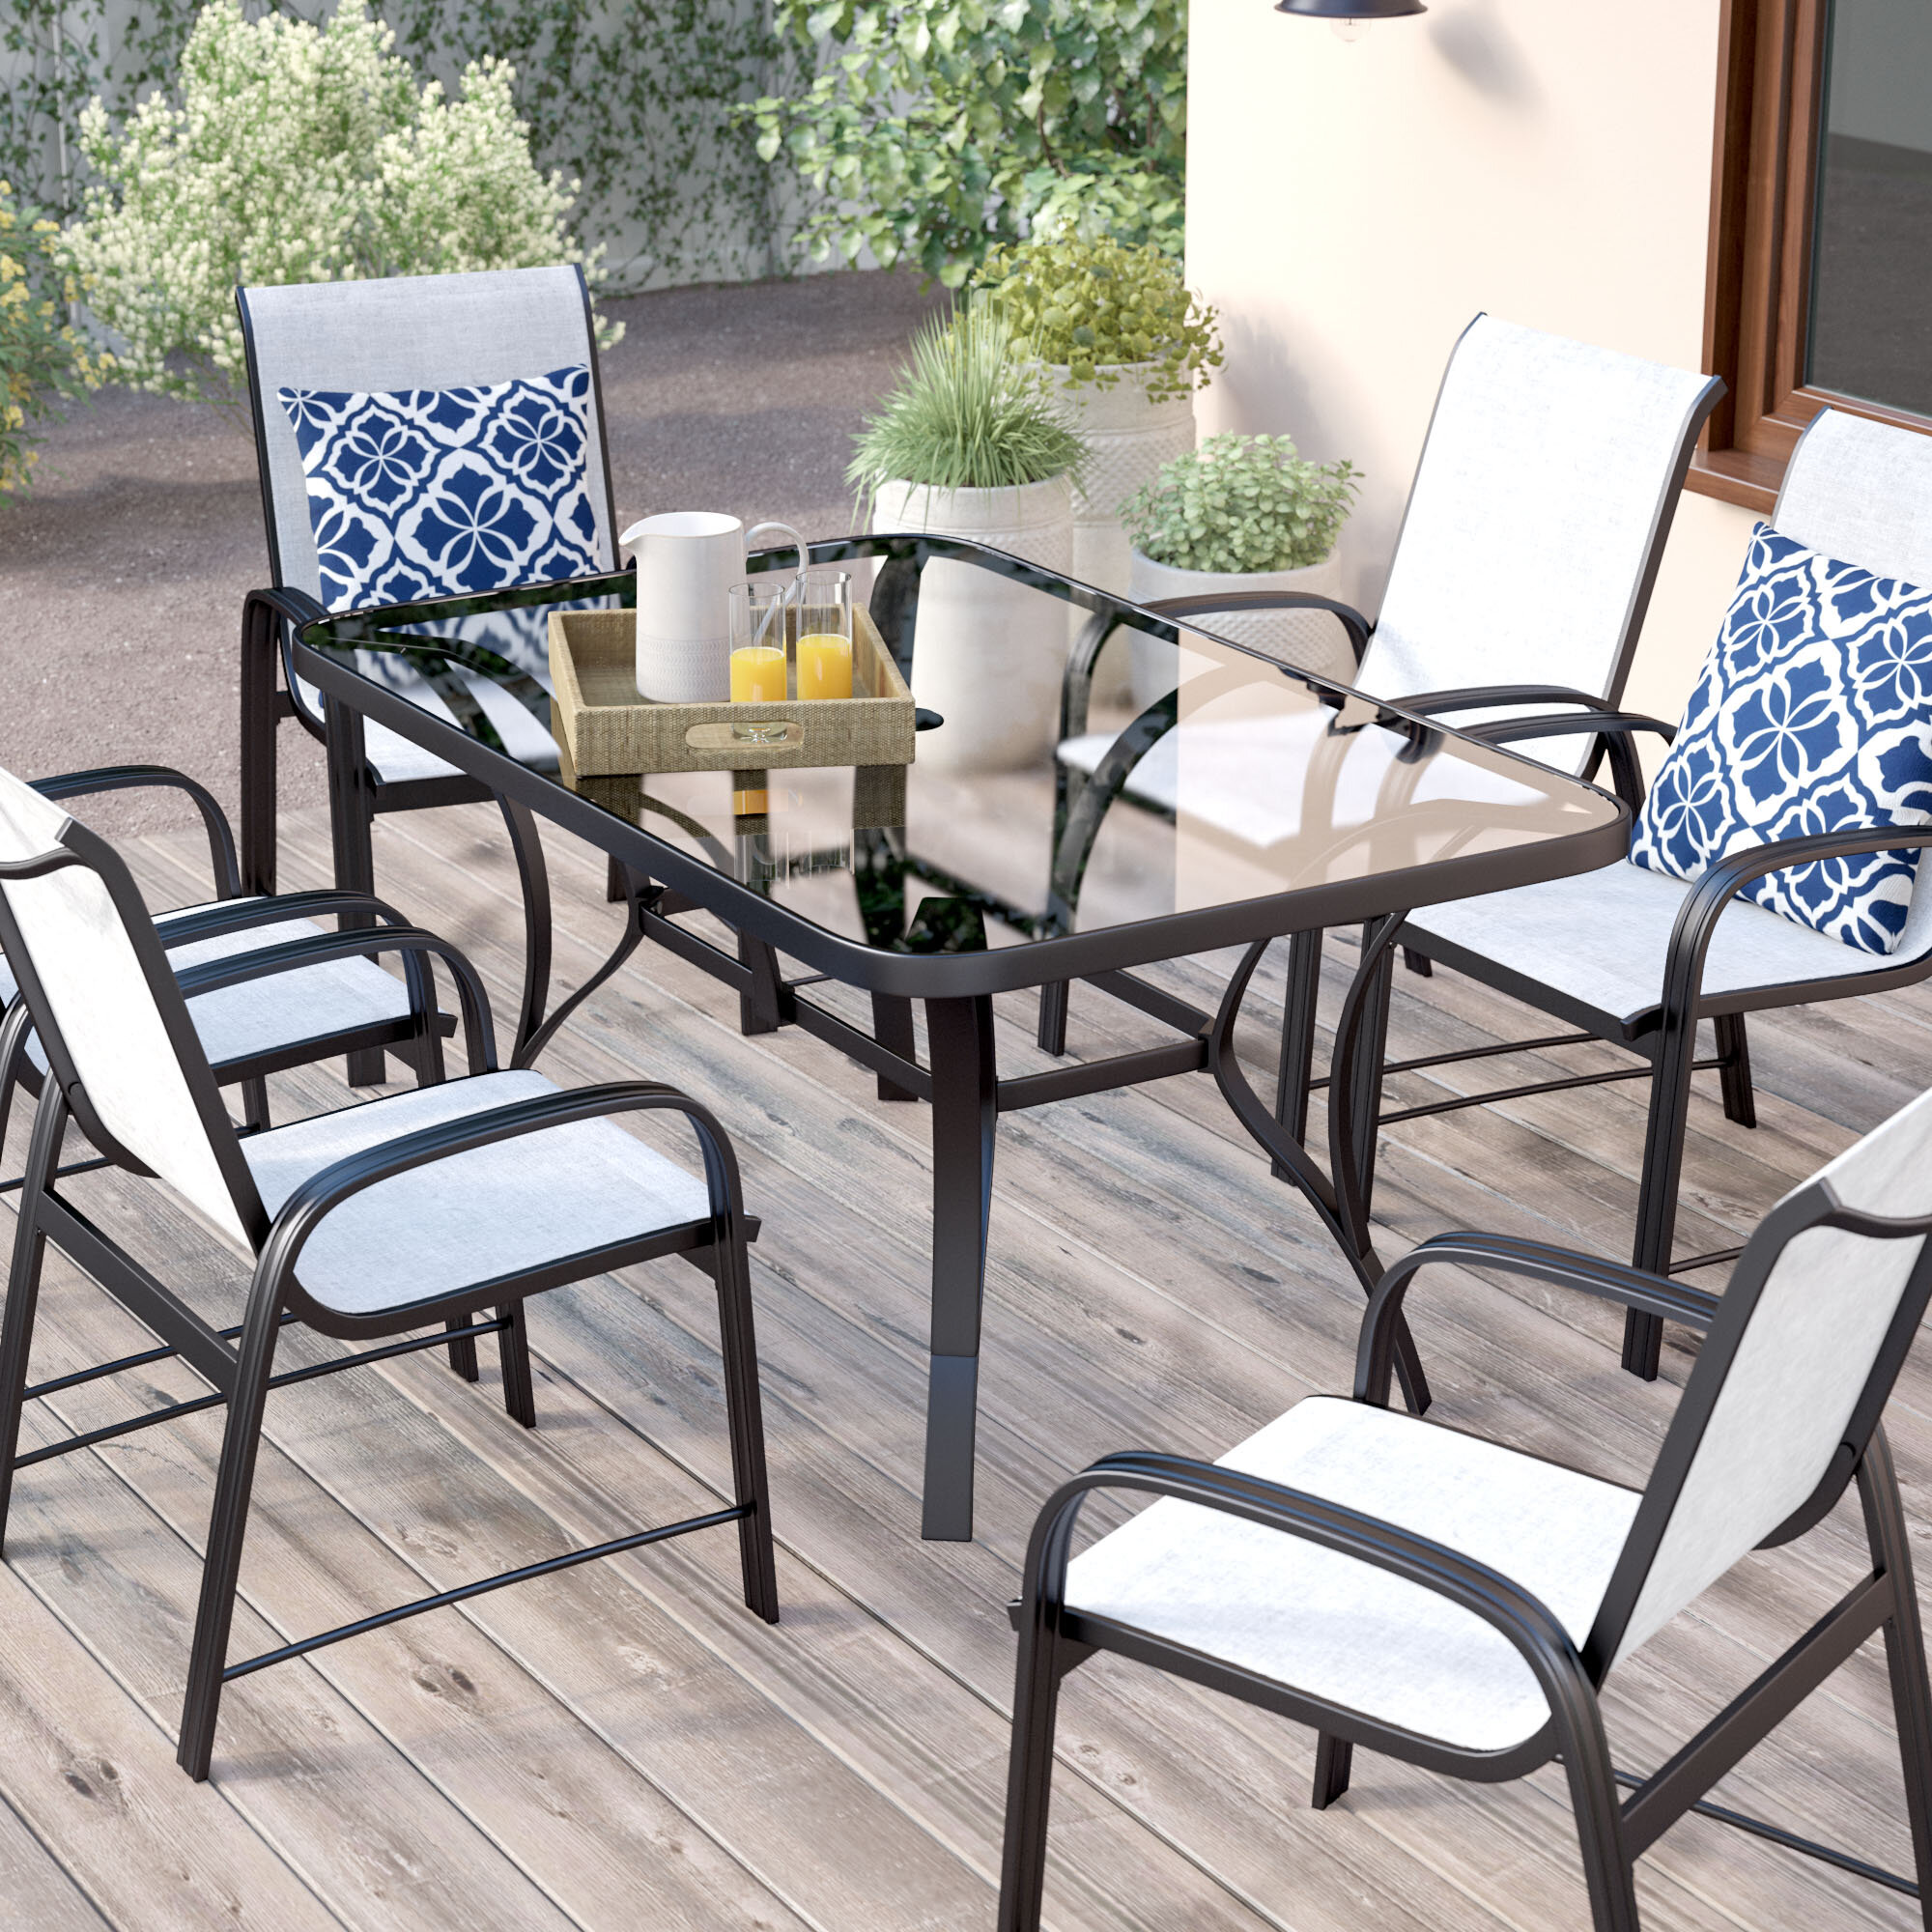 rectangular home in outdoors dining depot p set piece categories largo sets charcoal chairs the umbrella canada furniture en patio arm with